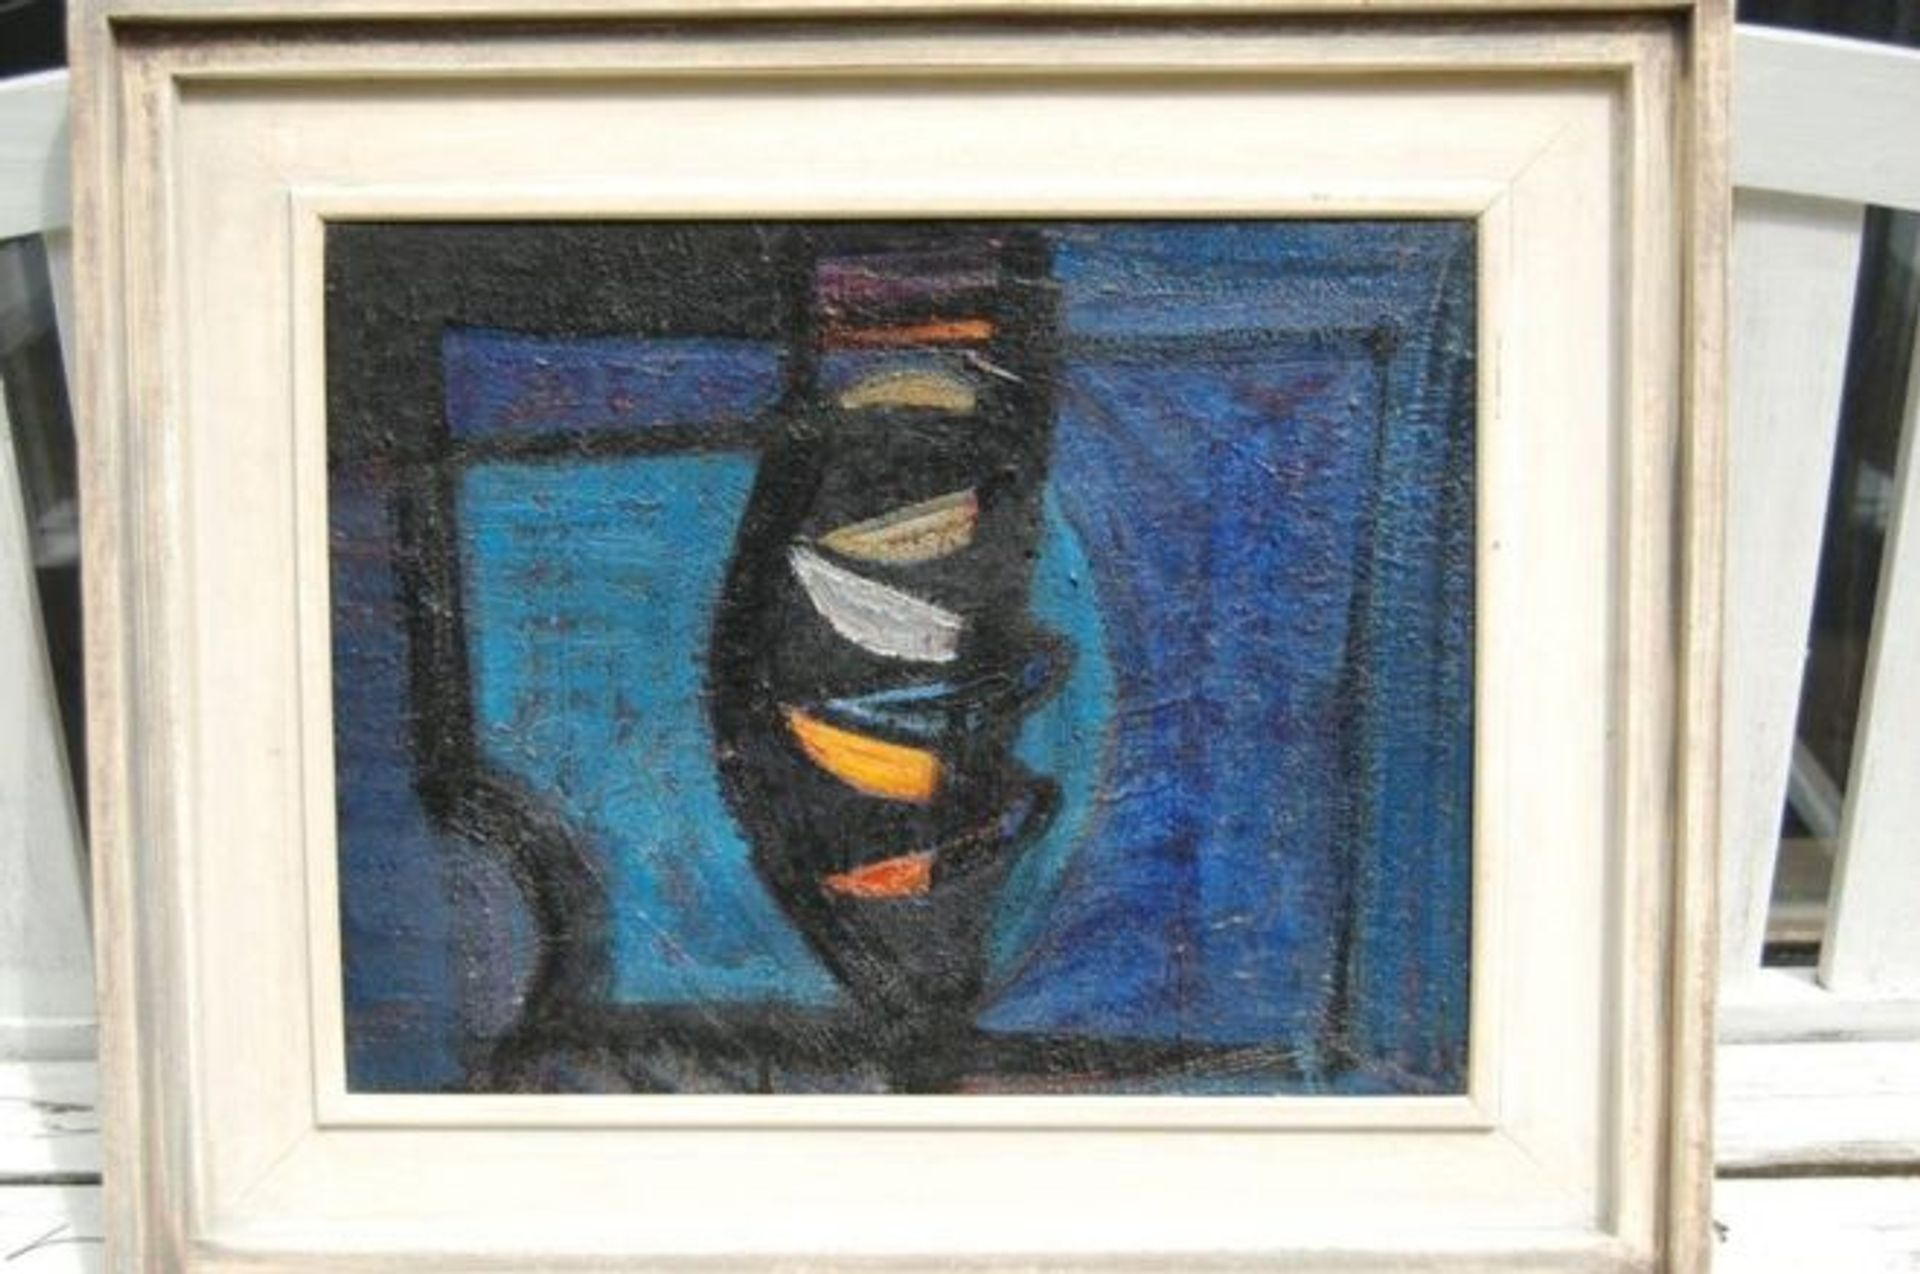 Terry Frost's Blue Harbour (1954) was left on a train © British Transport Police